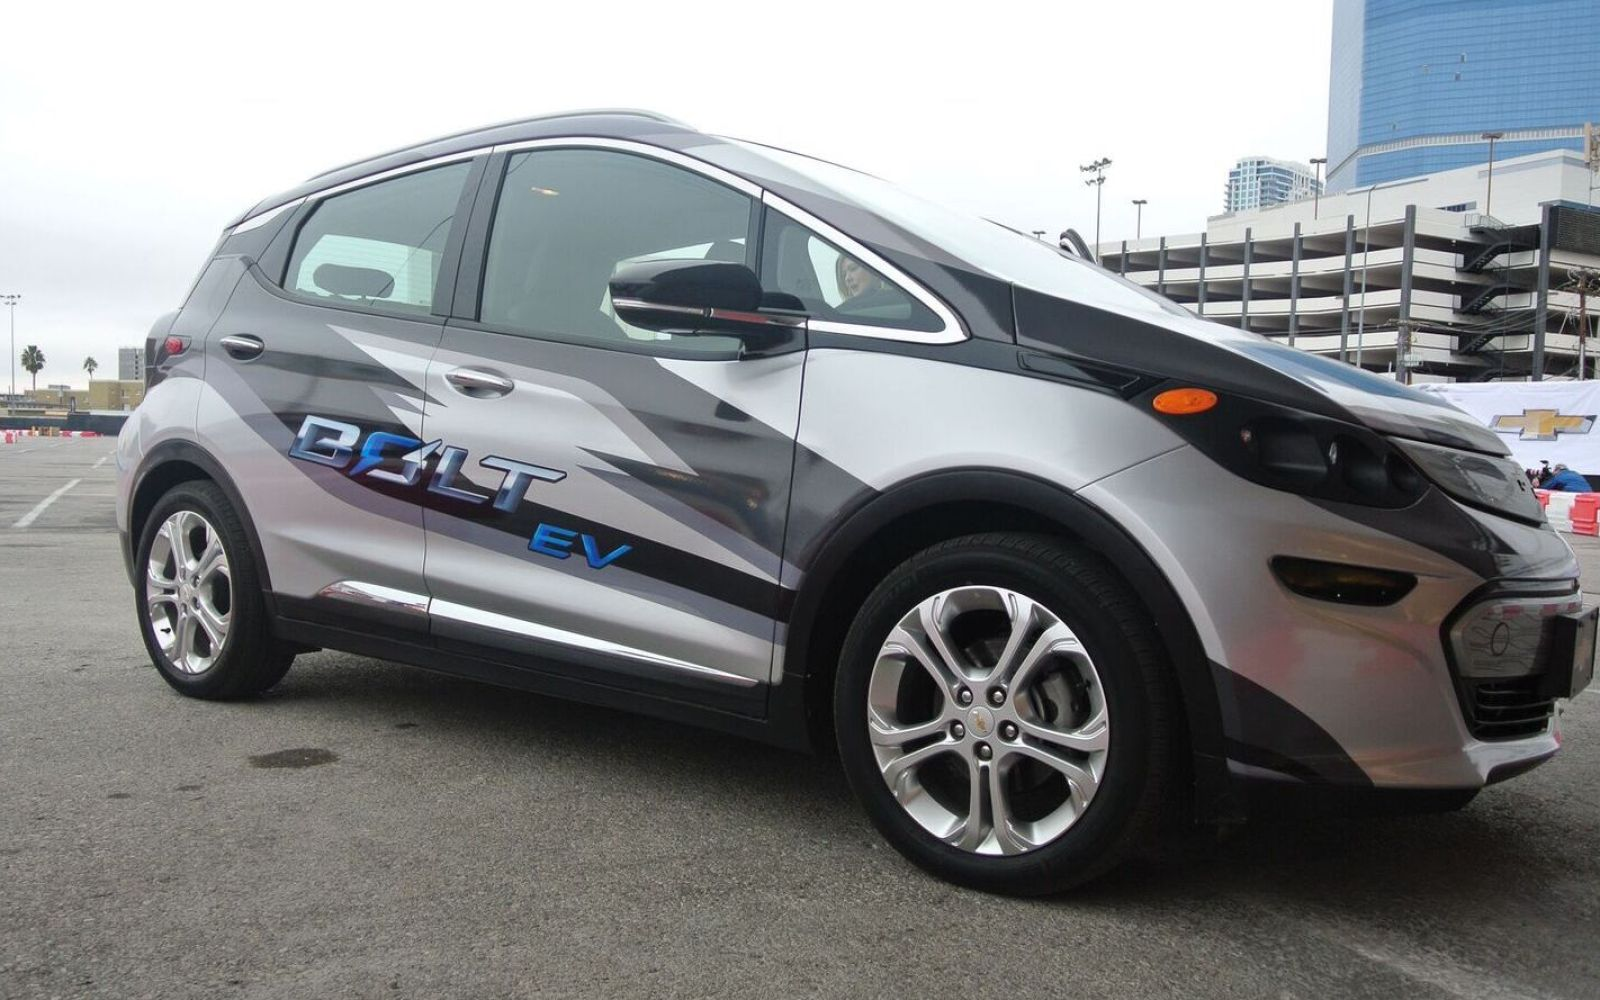 Lyft reportedly planning to pilot self-driving Chevy Bolt taxis 'within a year'